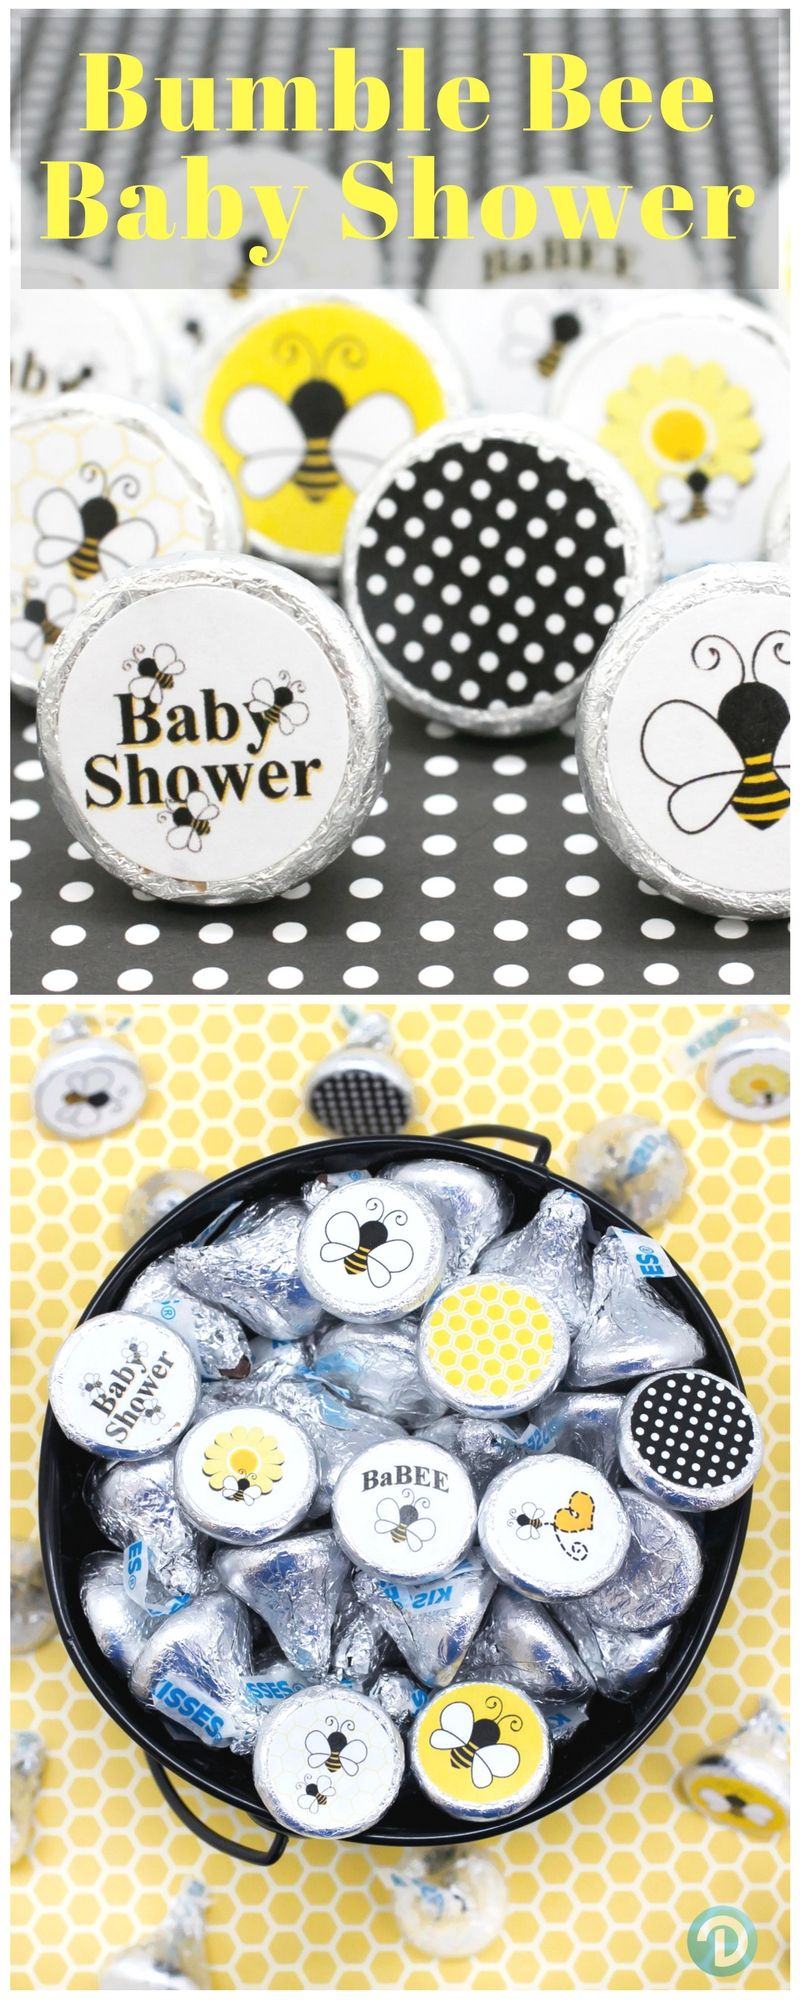 Bumble Bee Baby Shower Favor Idea Cute And Yummy Beebaby